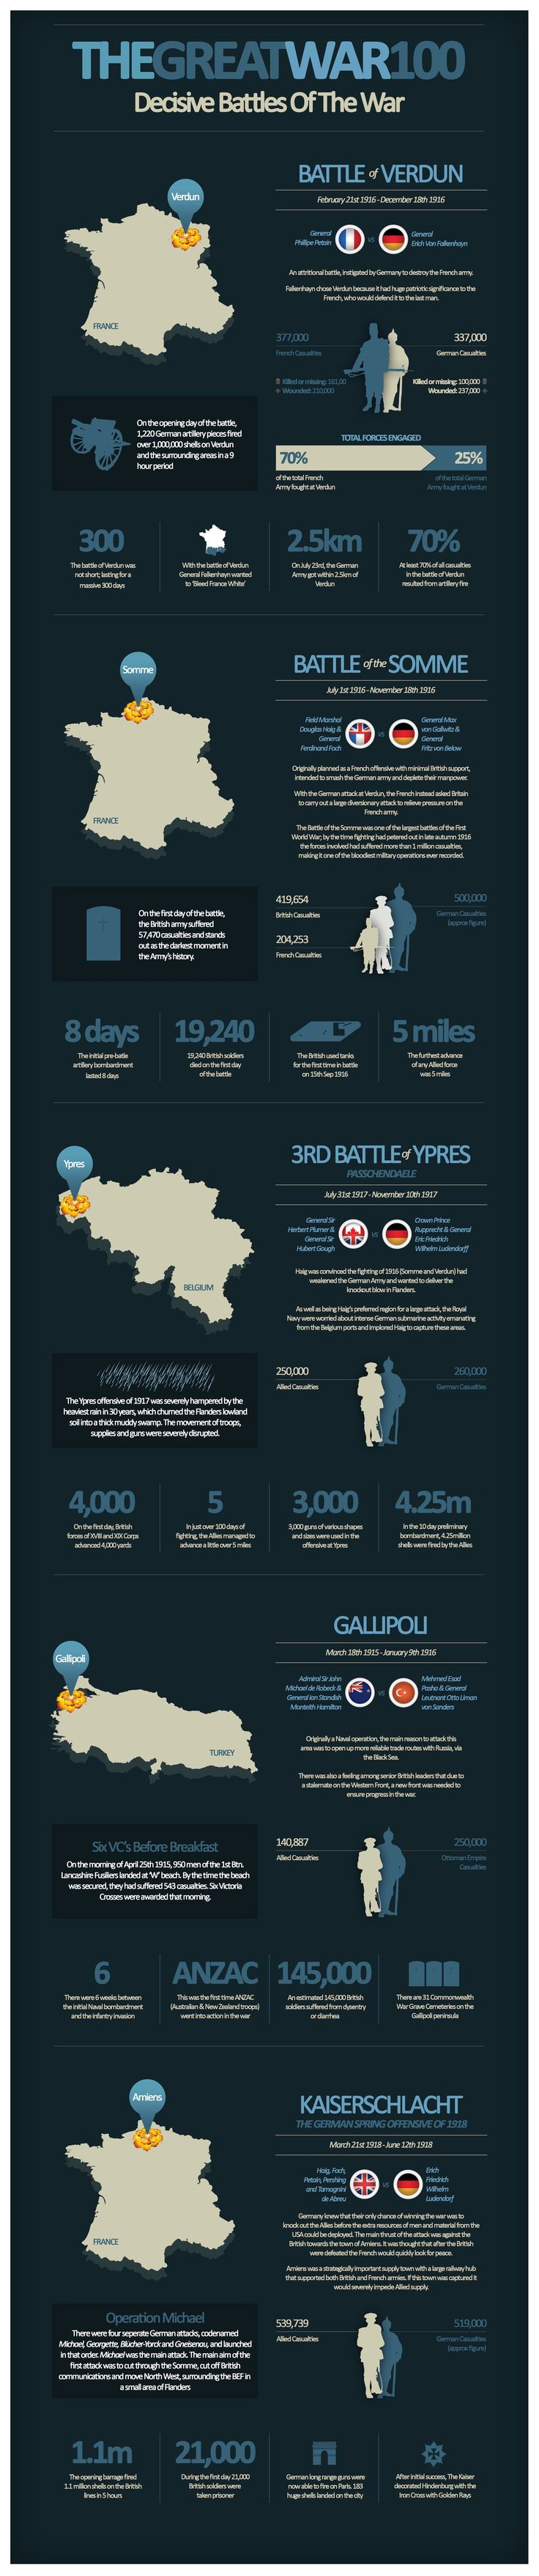 The Great War - Decisive Battles of the War